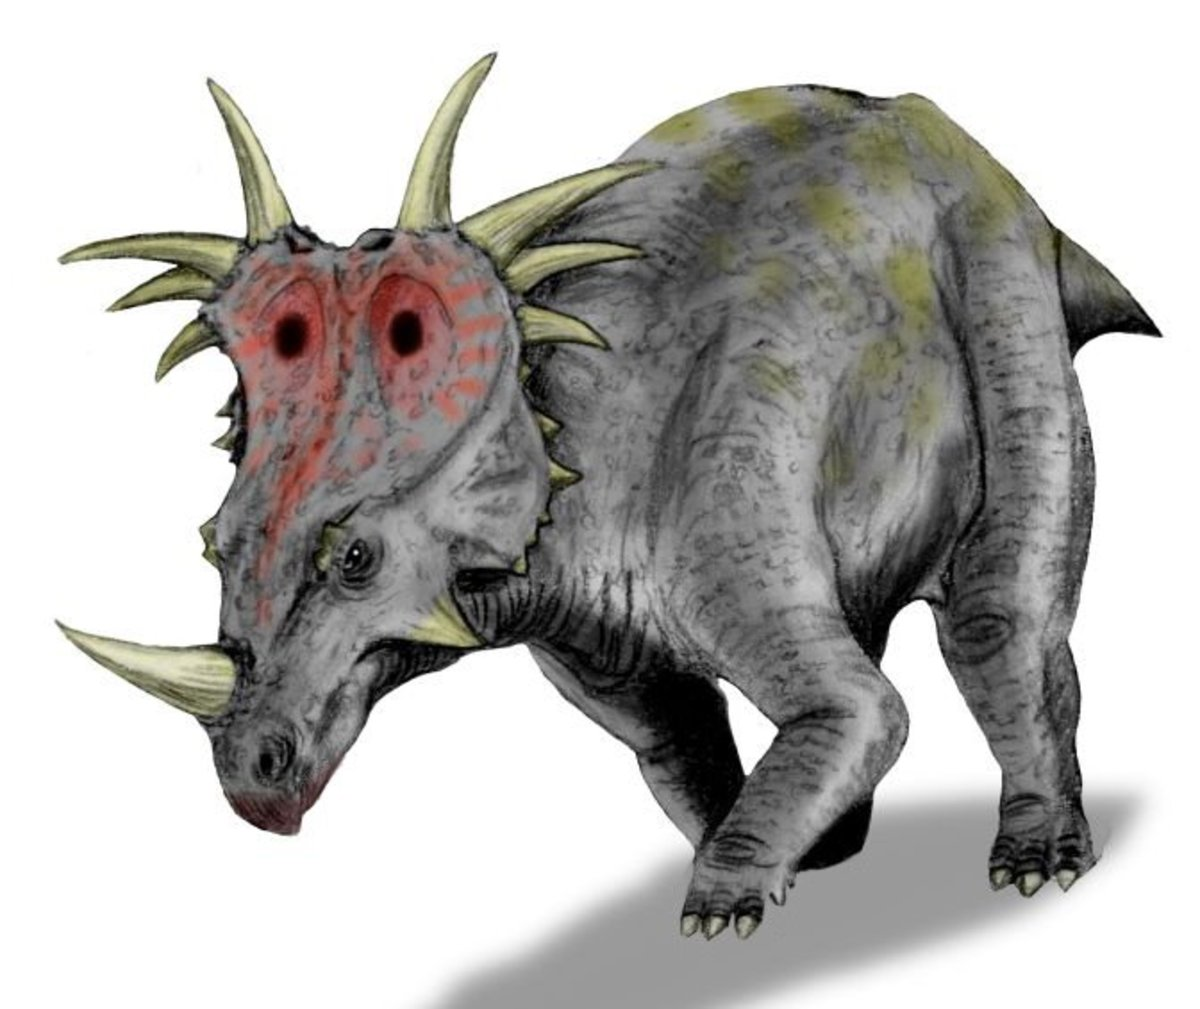 Is it possible there are prehistoric animals previously thought extinct still roaming our planet